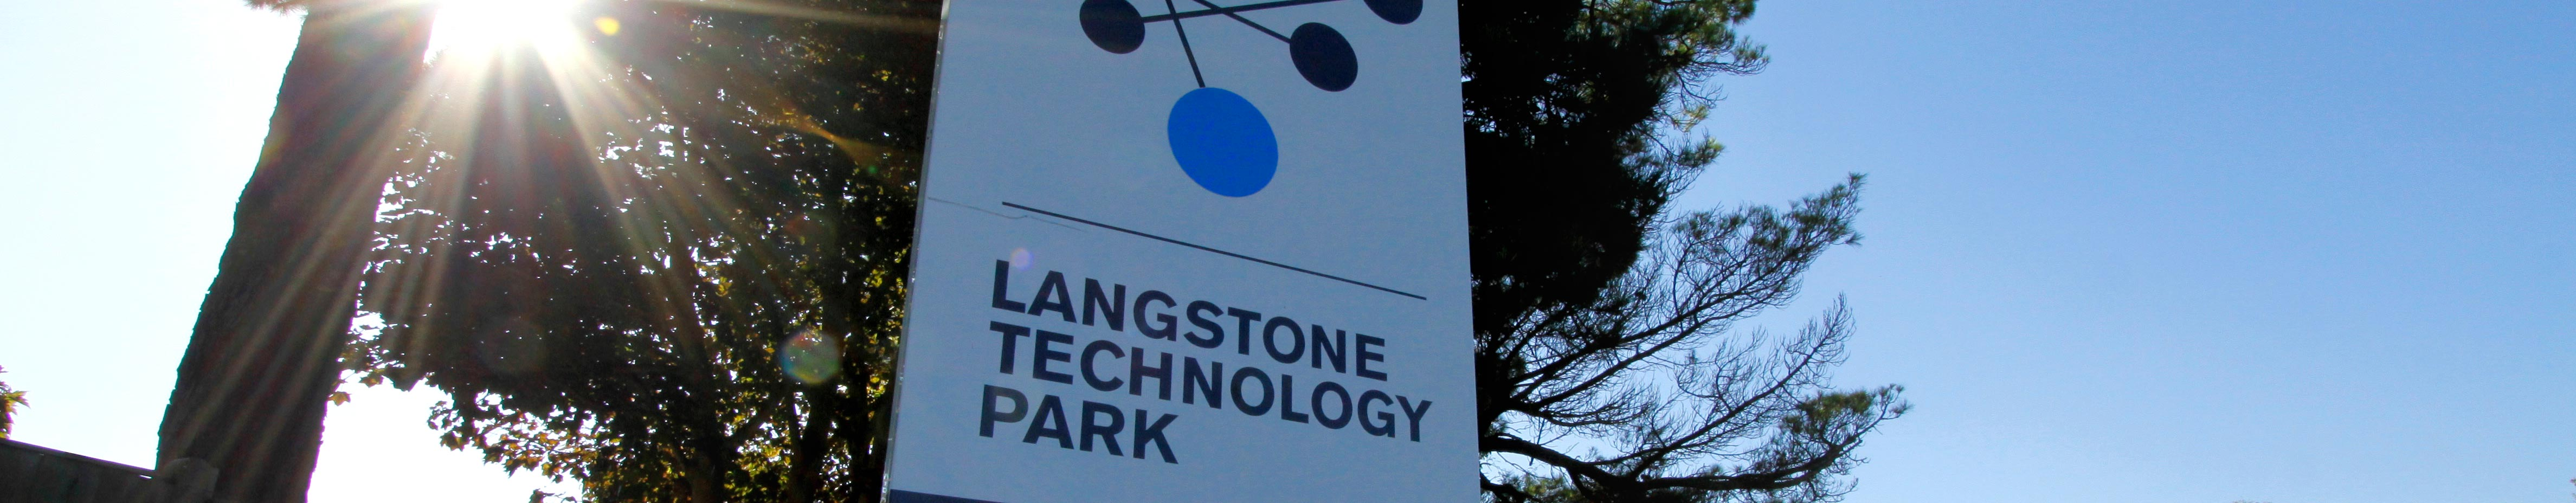 Langstone Technology Park sign